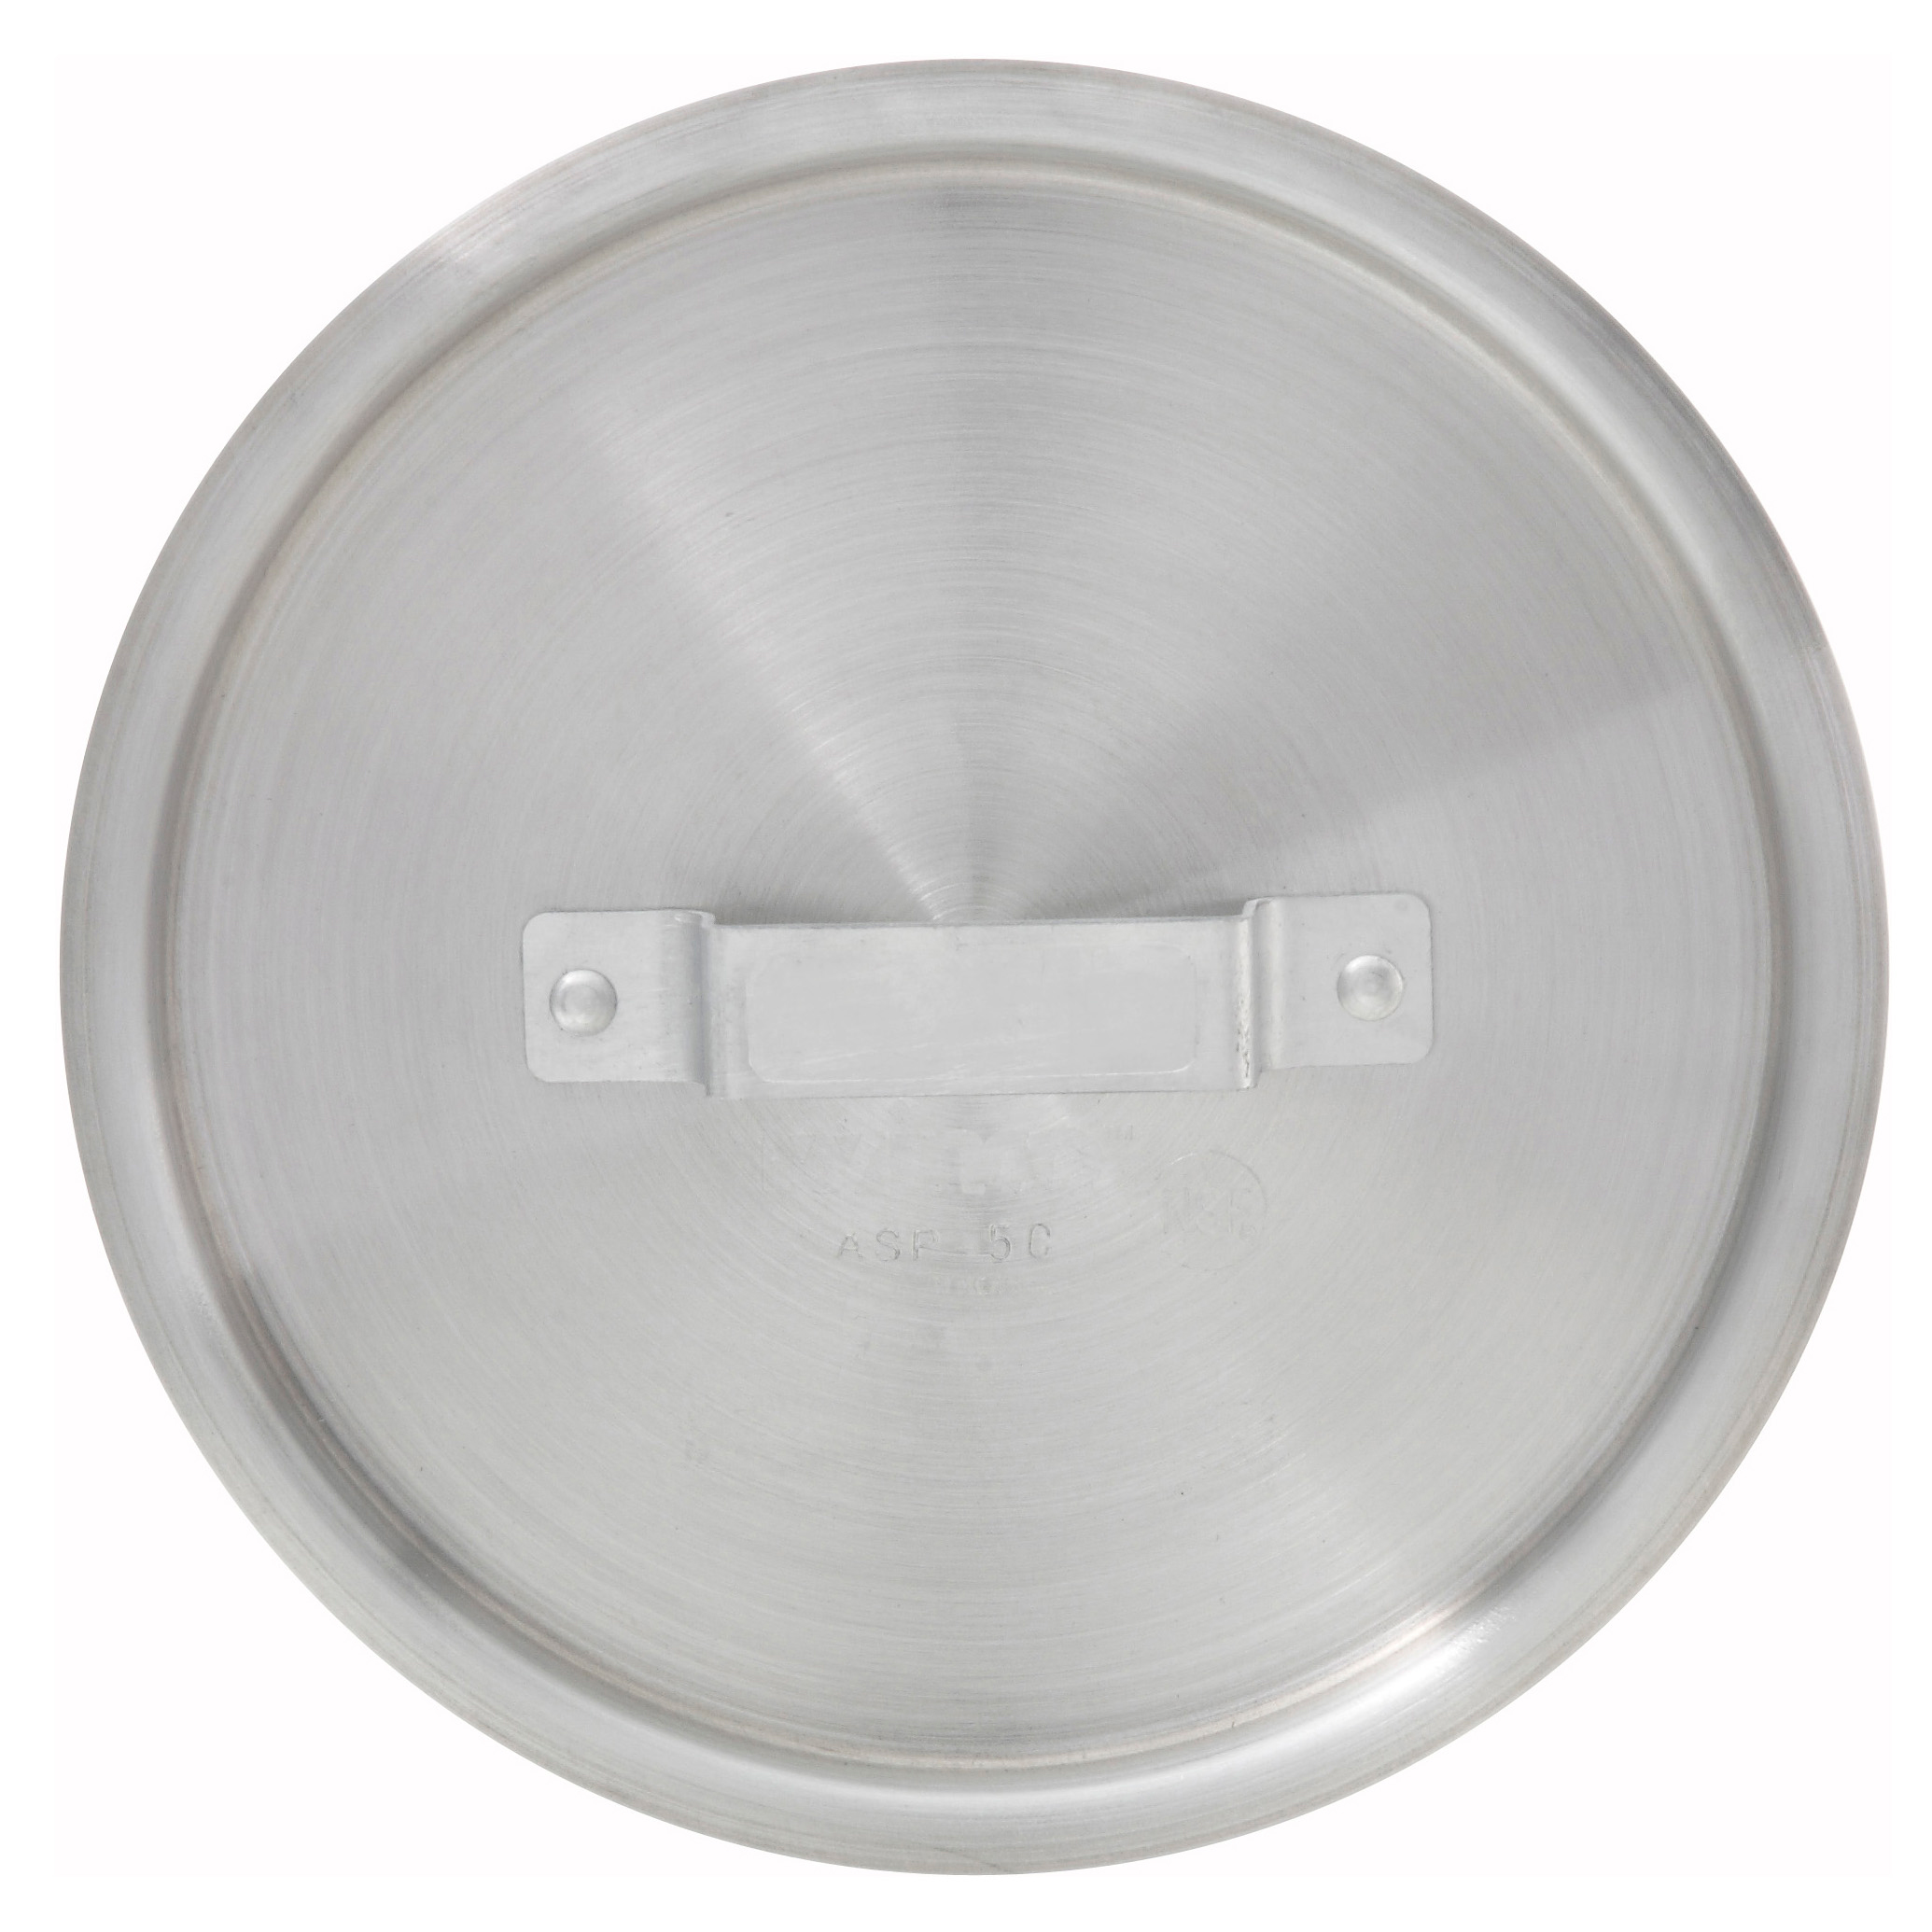 Winco ASP-2C cover / lid, cookware